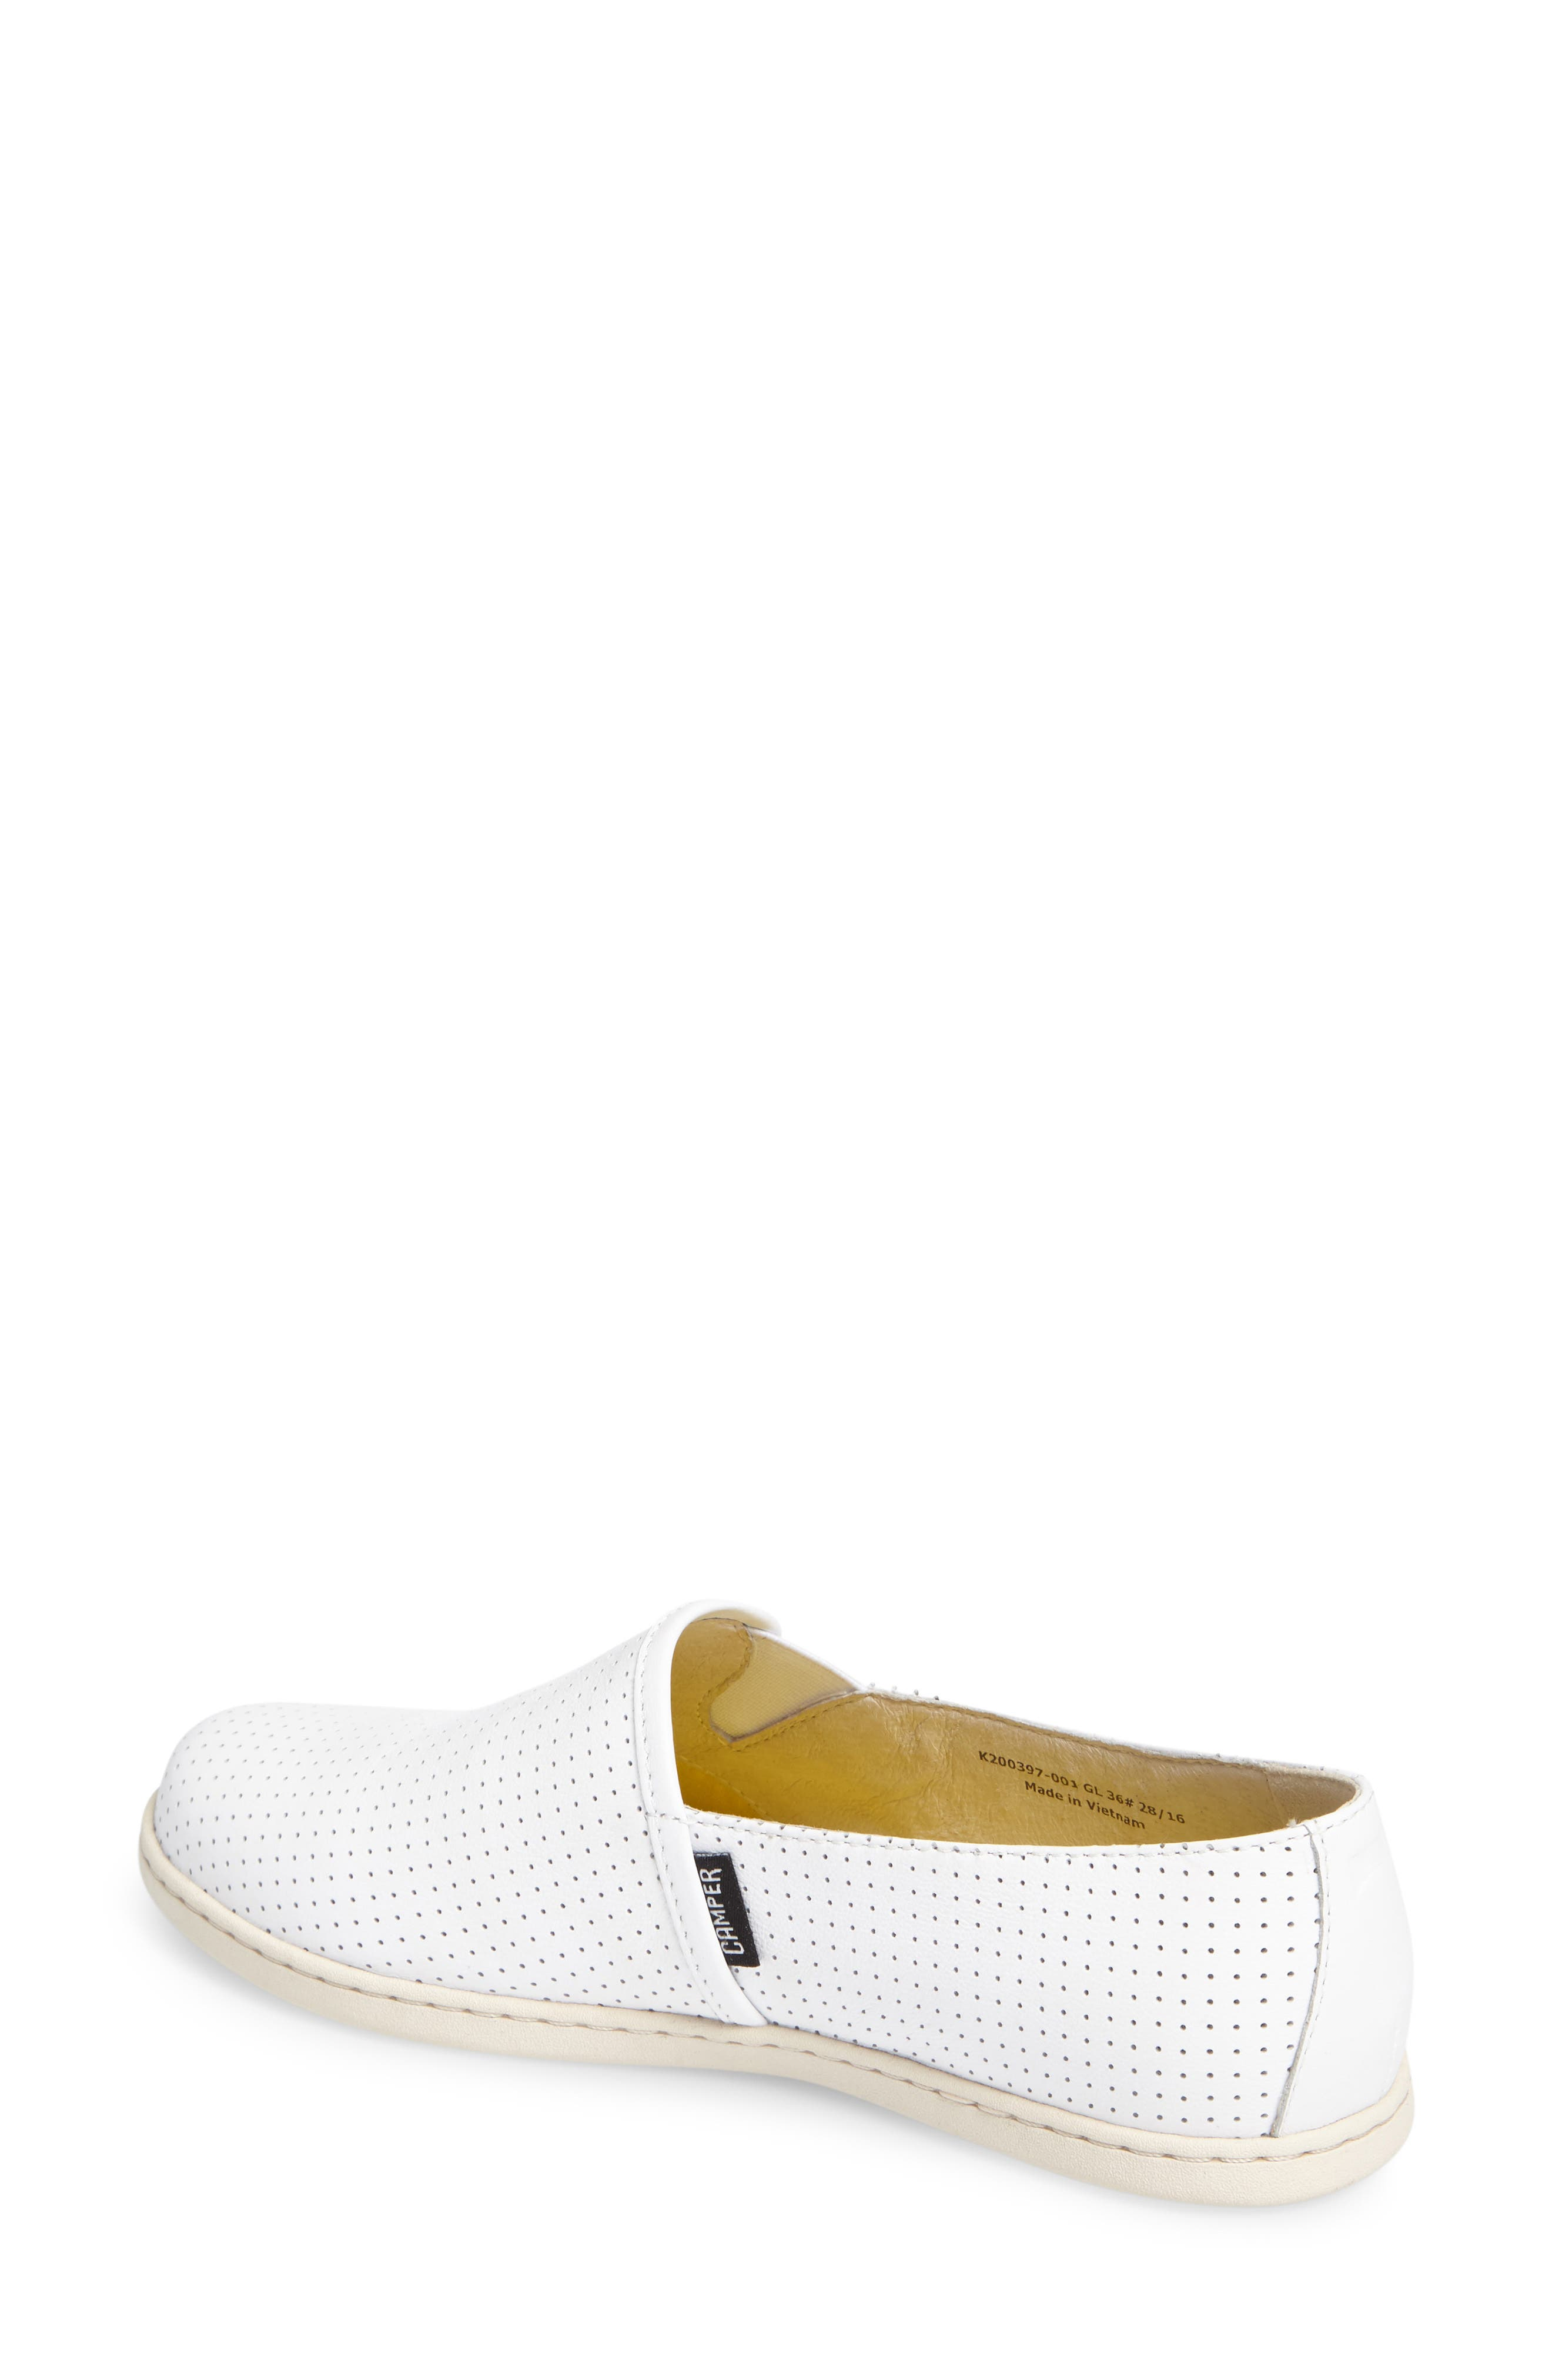 Uno Perforated Slip-On Sneaker,                             Alternate thumbnail 2, color,                             100